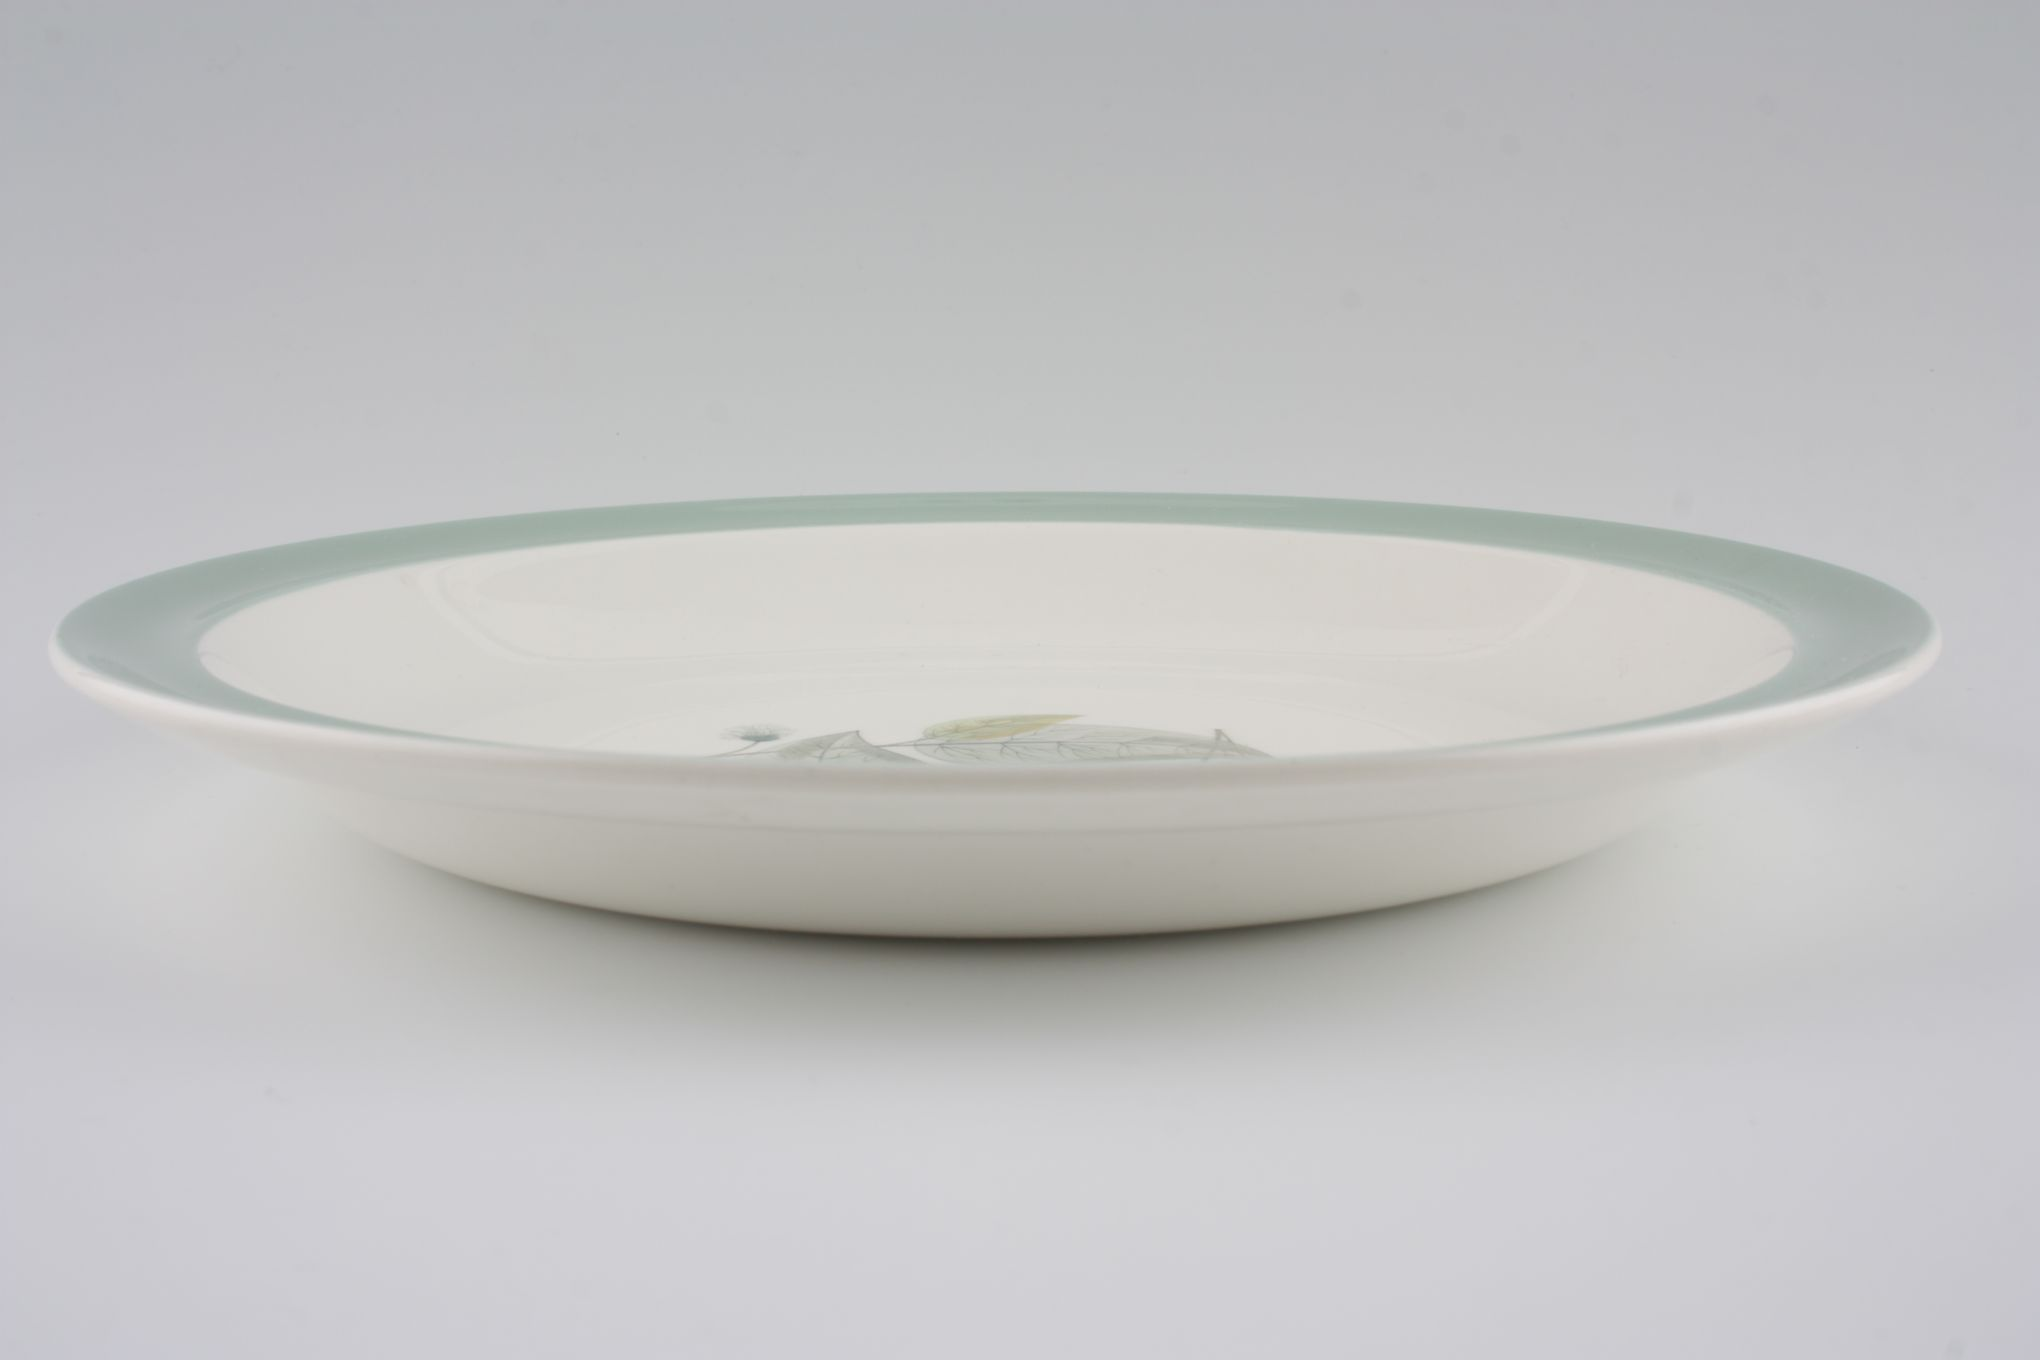 "Wedgwood Woodbury Breakfast / Salad / Luncheon Plate Deep 9 1/4"" thumb 1"